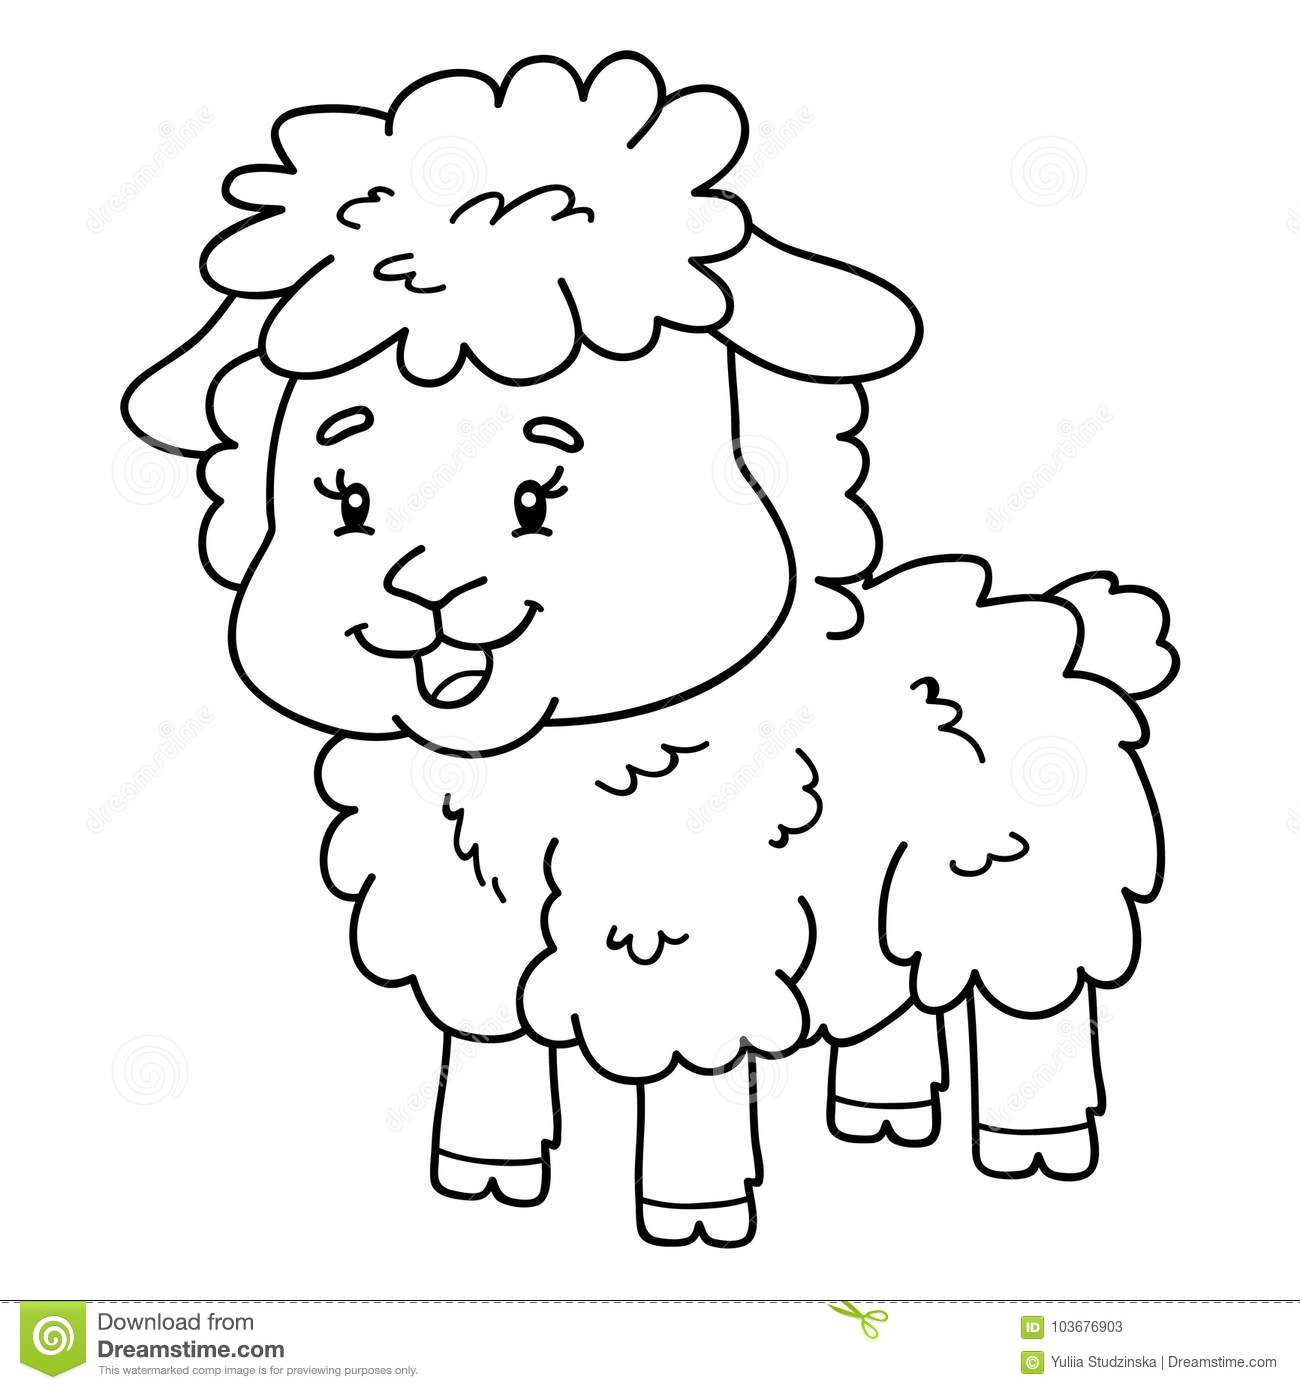 Coloring Page Cartoon Sheep Stock Vector - Illustration of vector ...